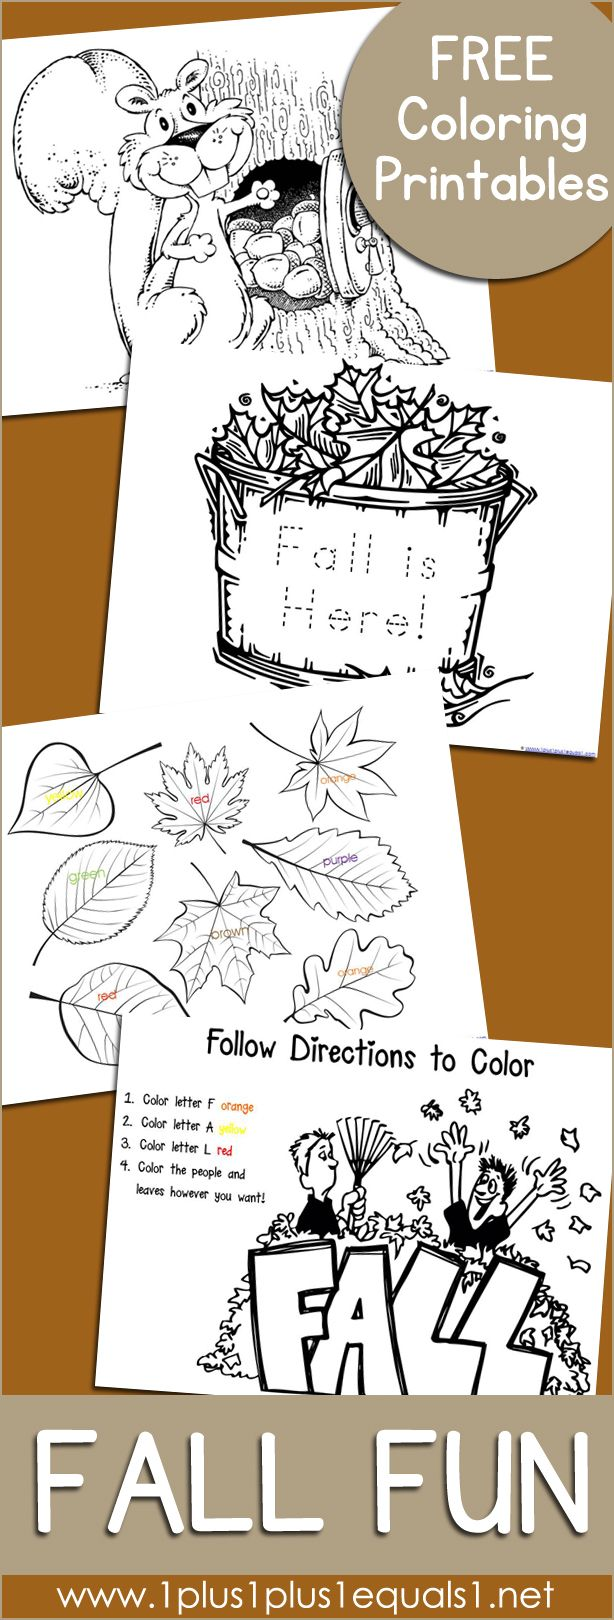 191 best fall theme images on pinterest fall autumn crafts and